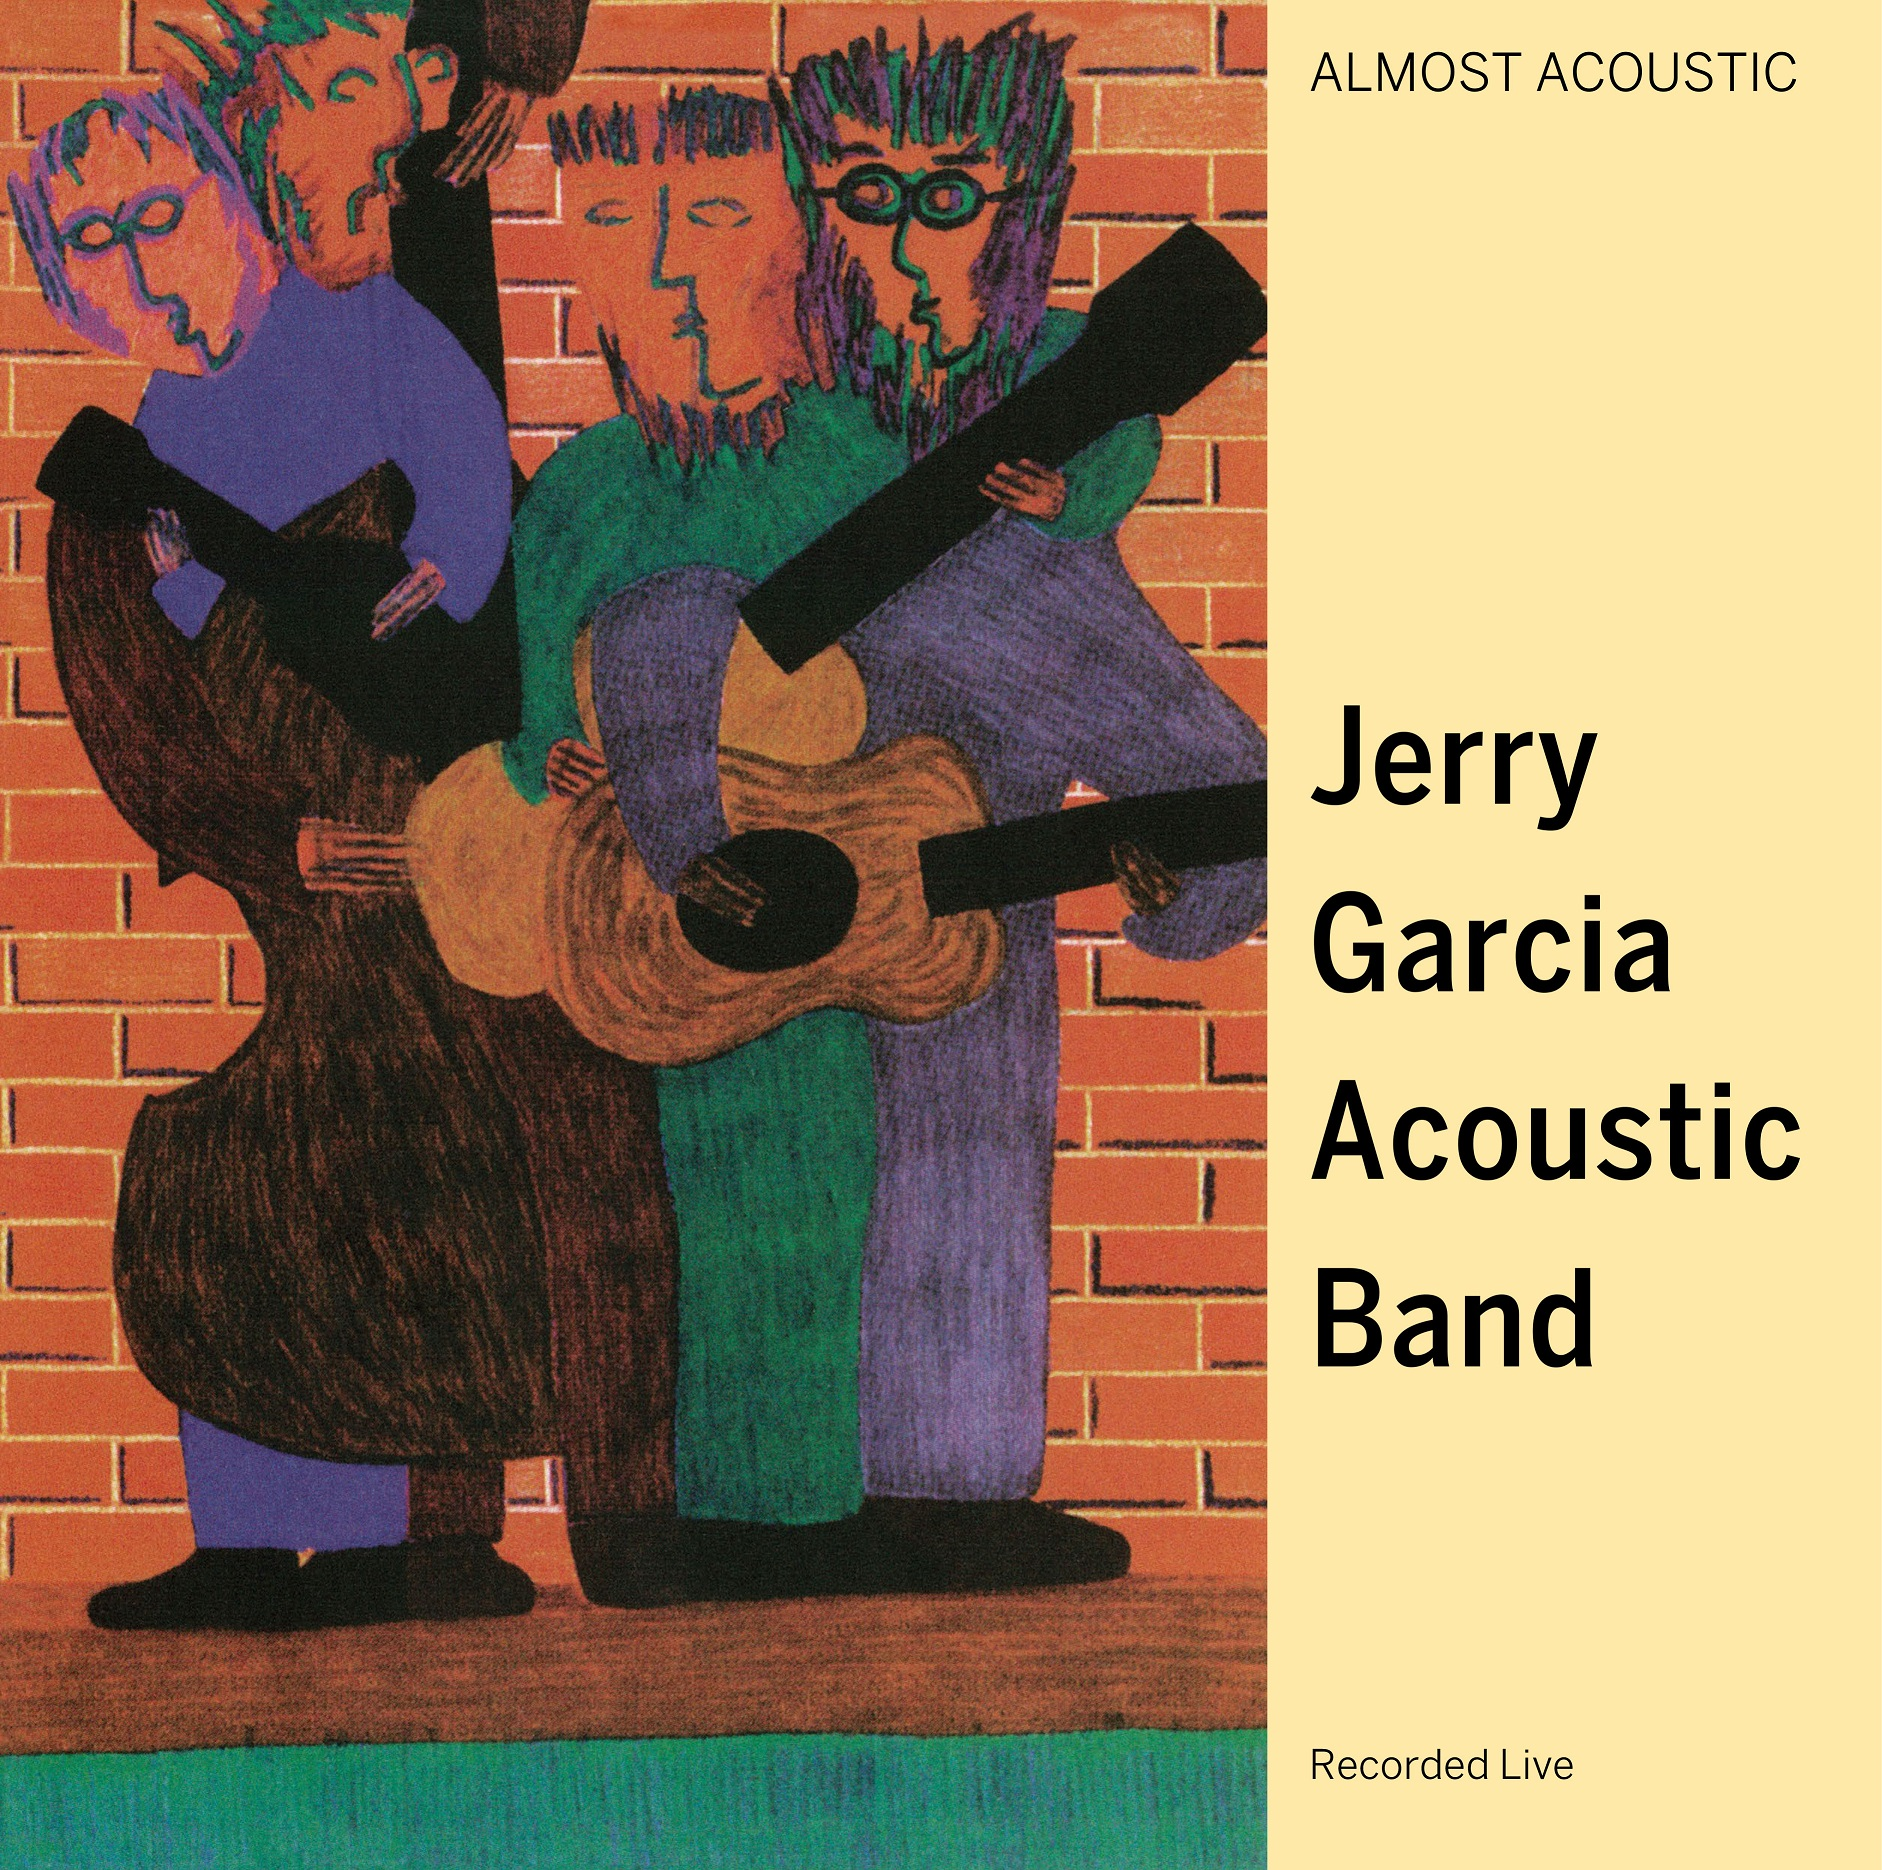 "Jerry Garcia Acoustic Band ""Almost Acoustic"" Special Re-issue for Record Store Day, Nov. 23rd"